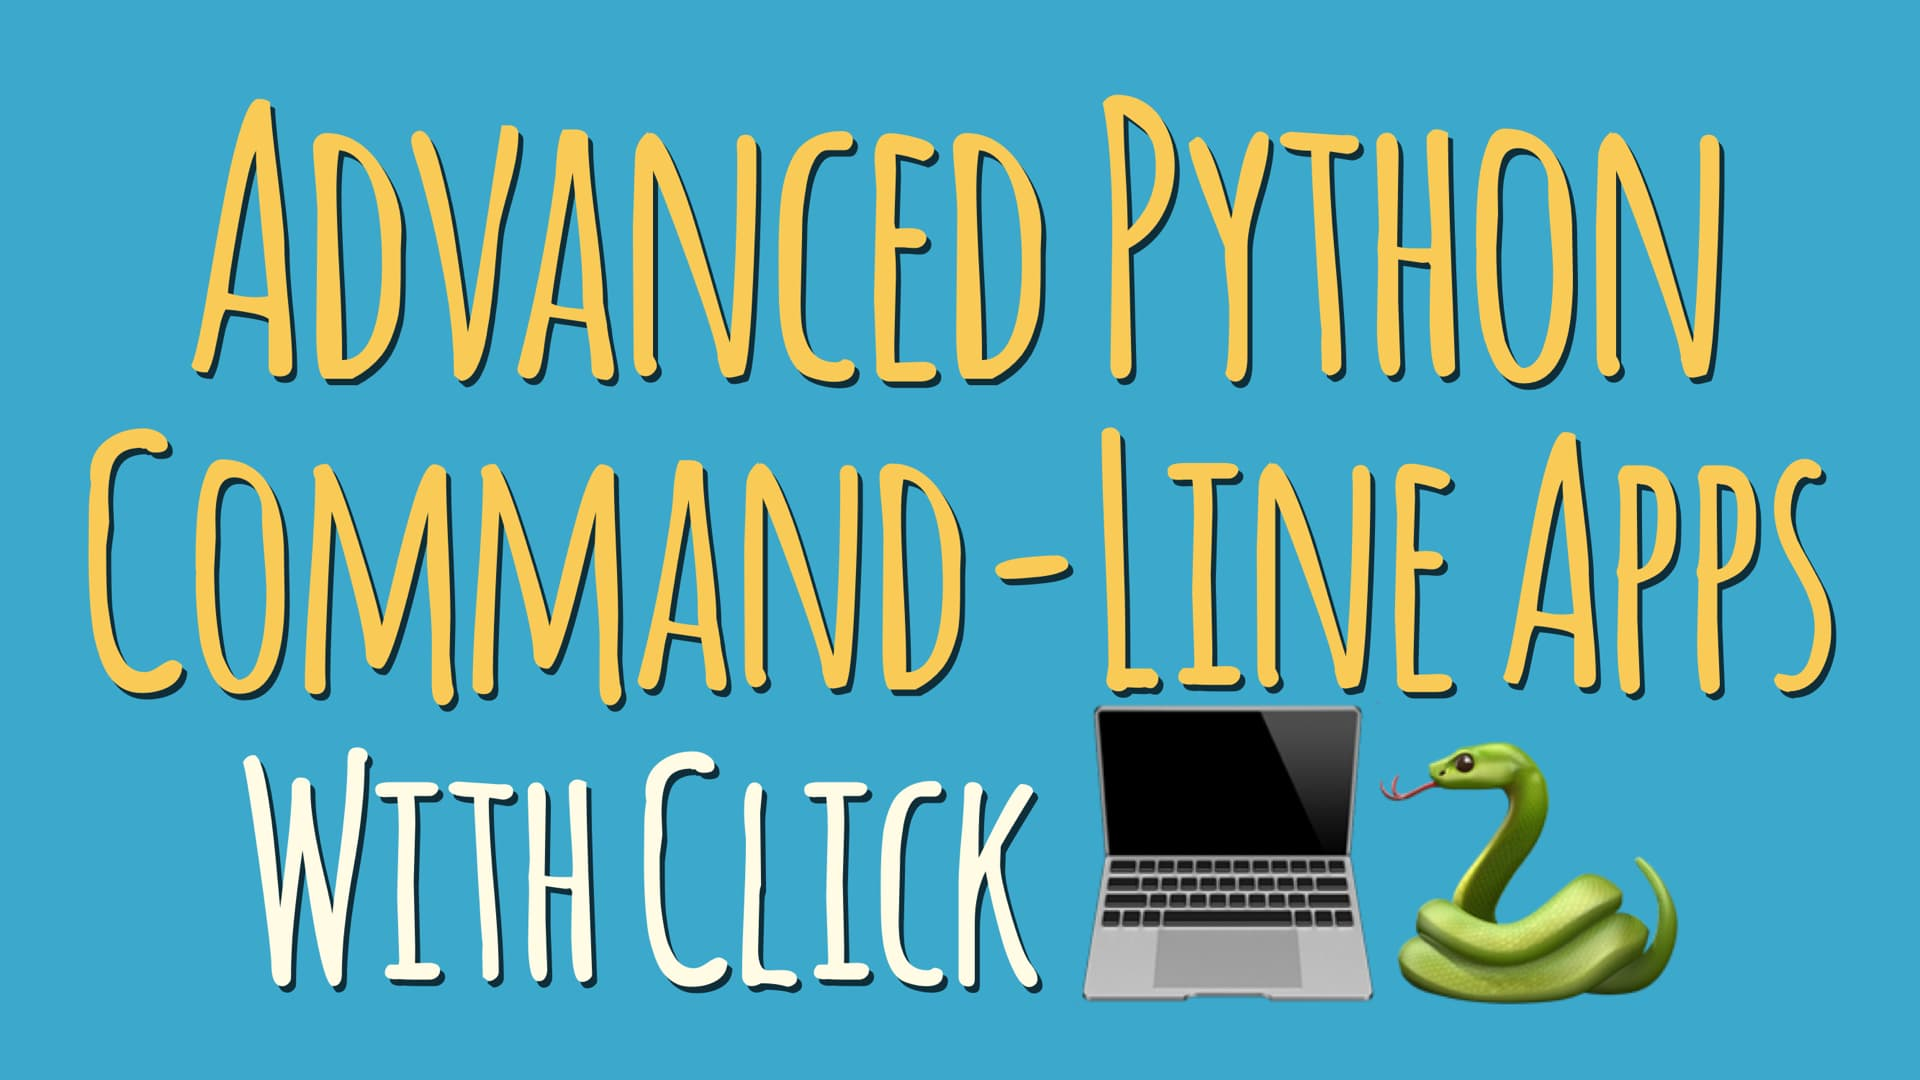 Mastering Click: Writing Advanced Python Command-Line Apps